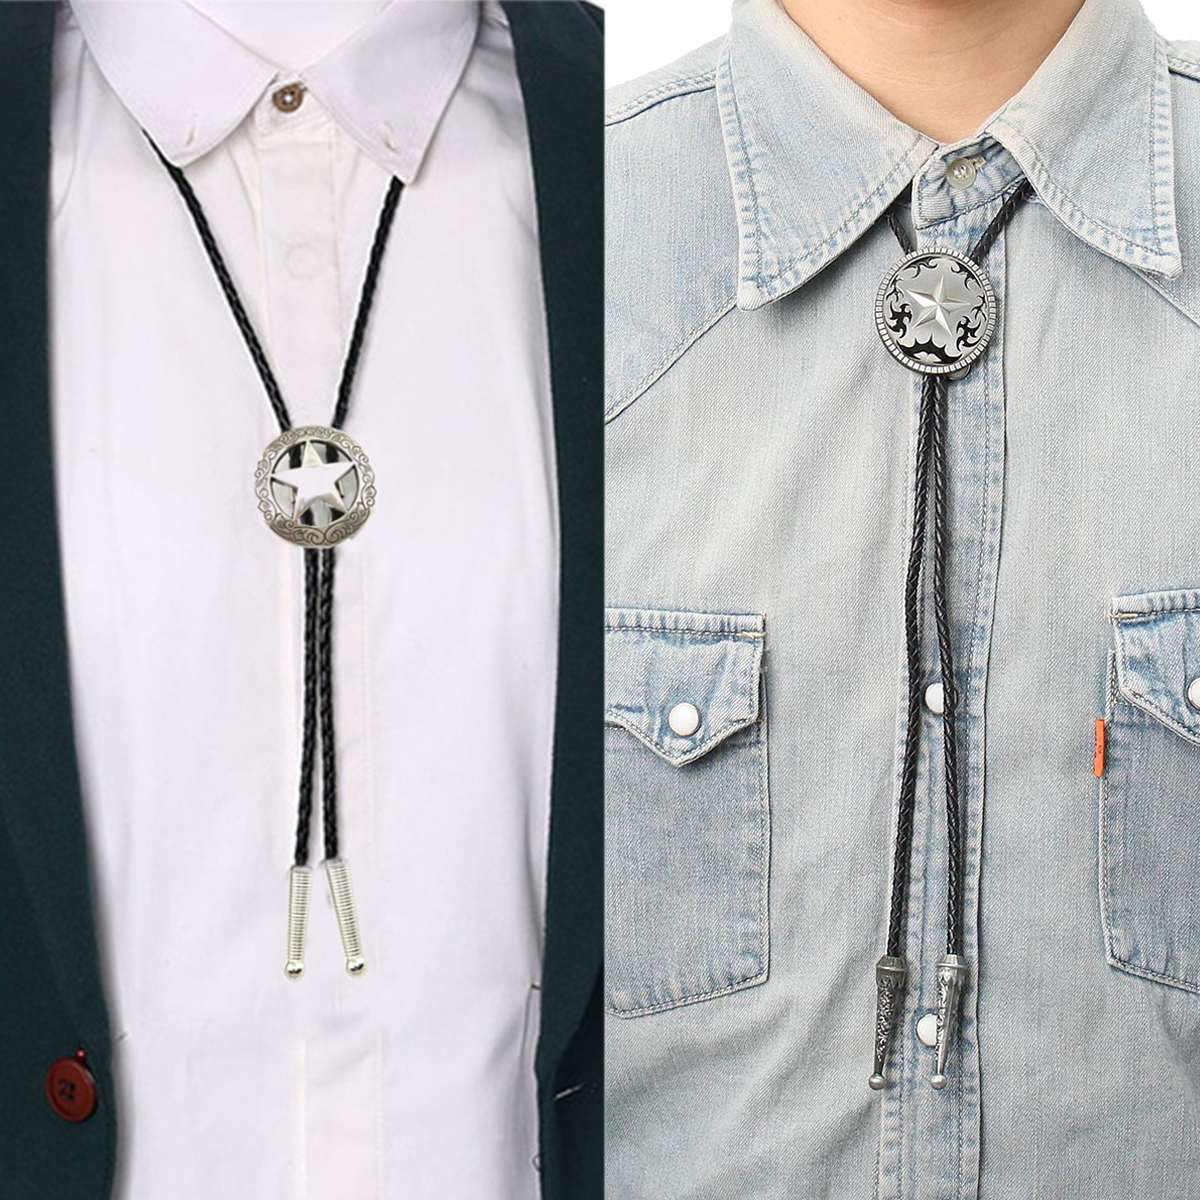 Unisex Cowboy Star Bolo Tie, Men Women Vintage Casual Neckties, Rodeo Blackeosegal-eosegal